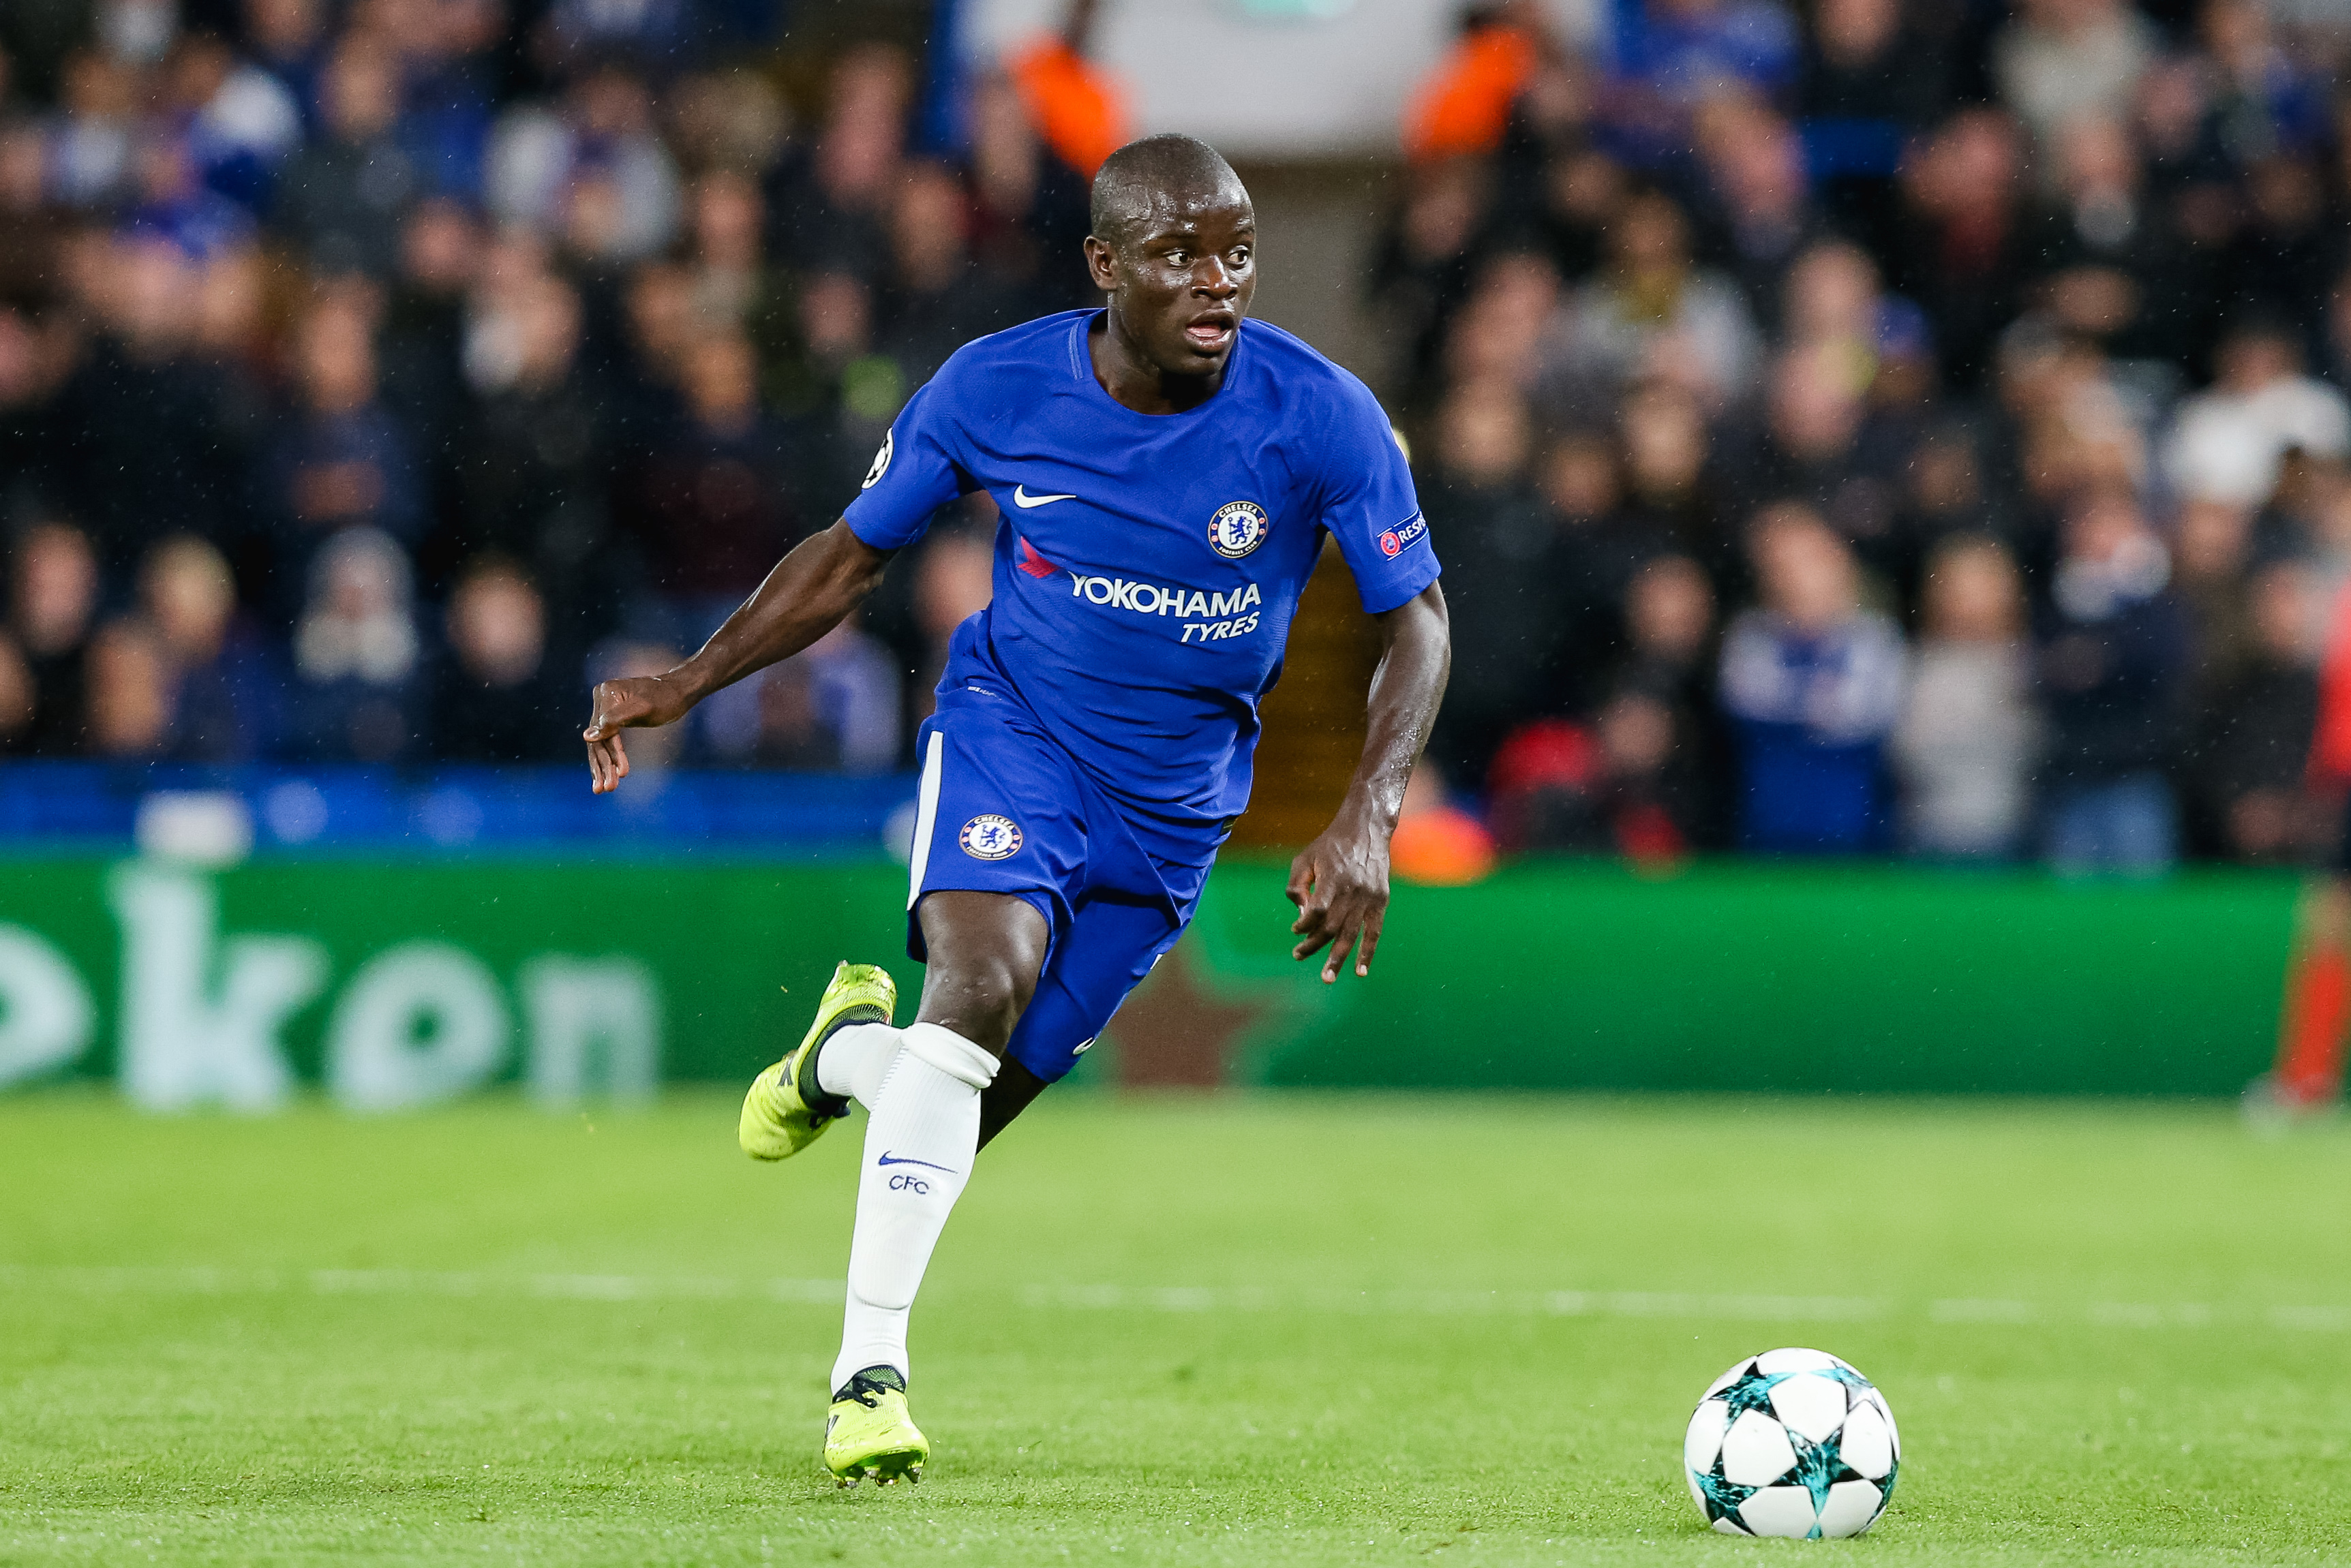 Chelsea's N'Golo Kante Agrees Contract Terms With PSG